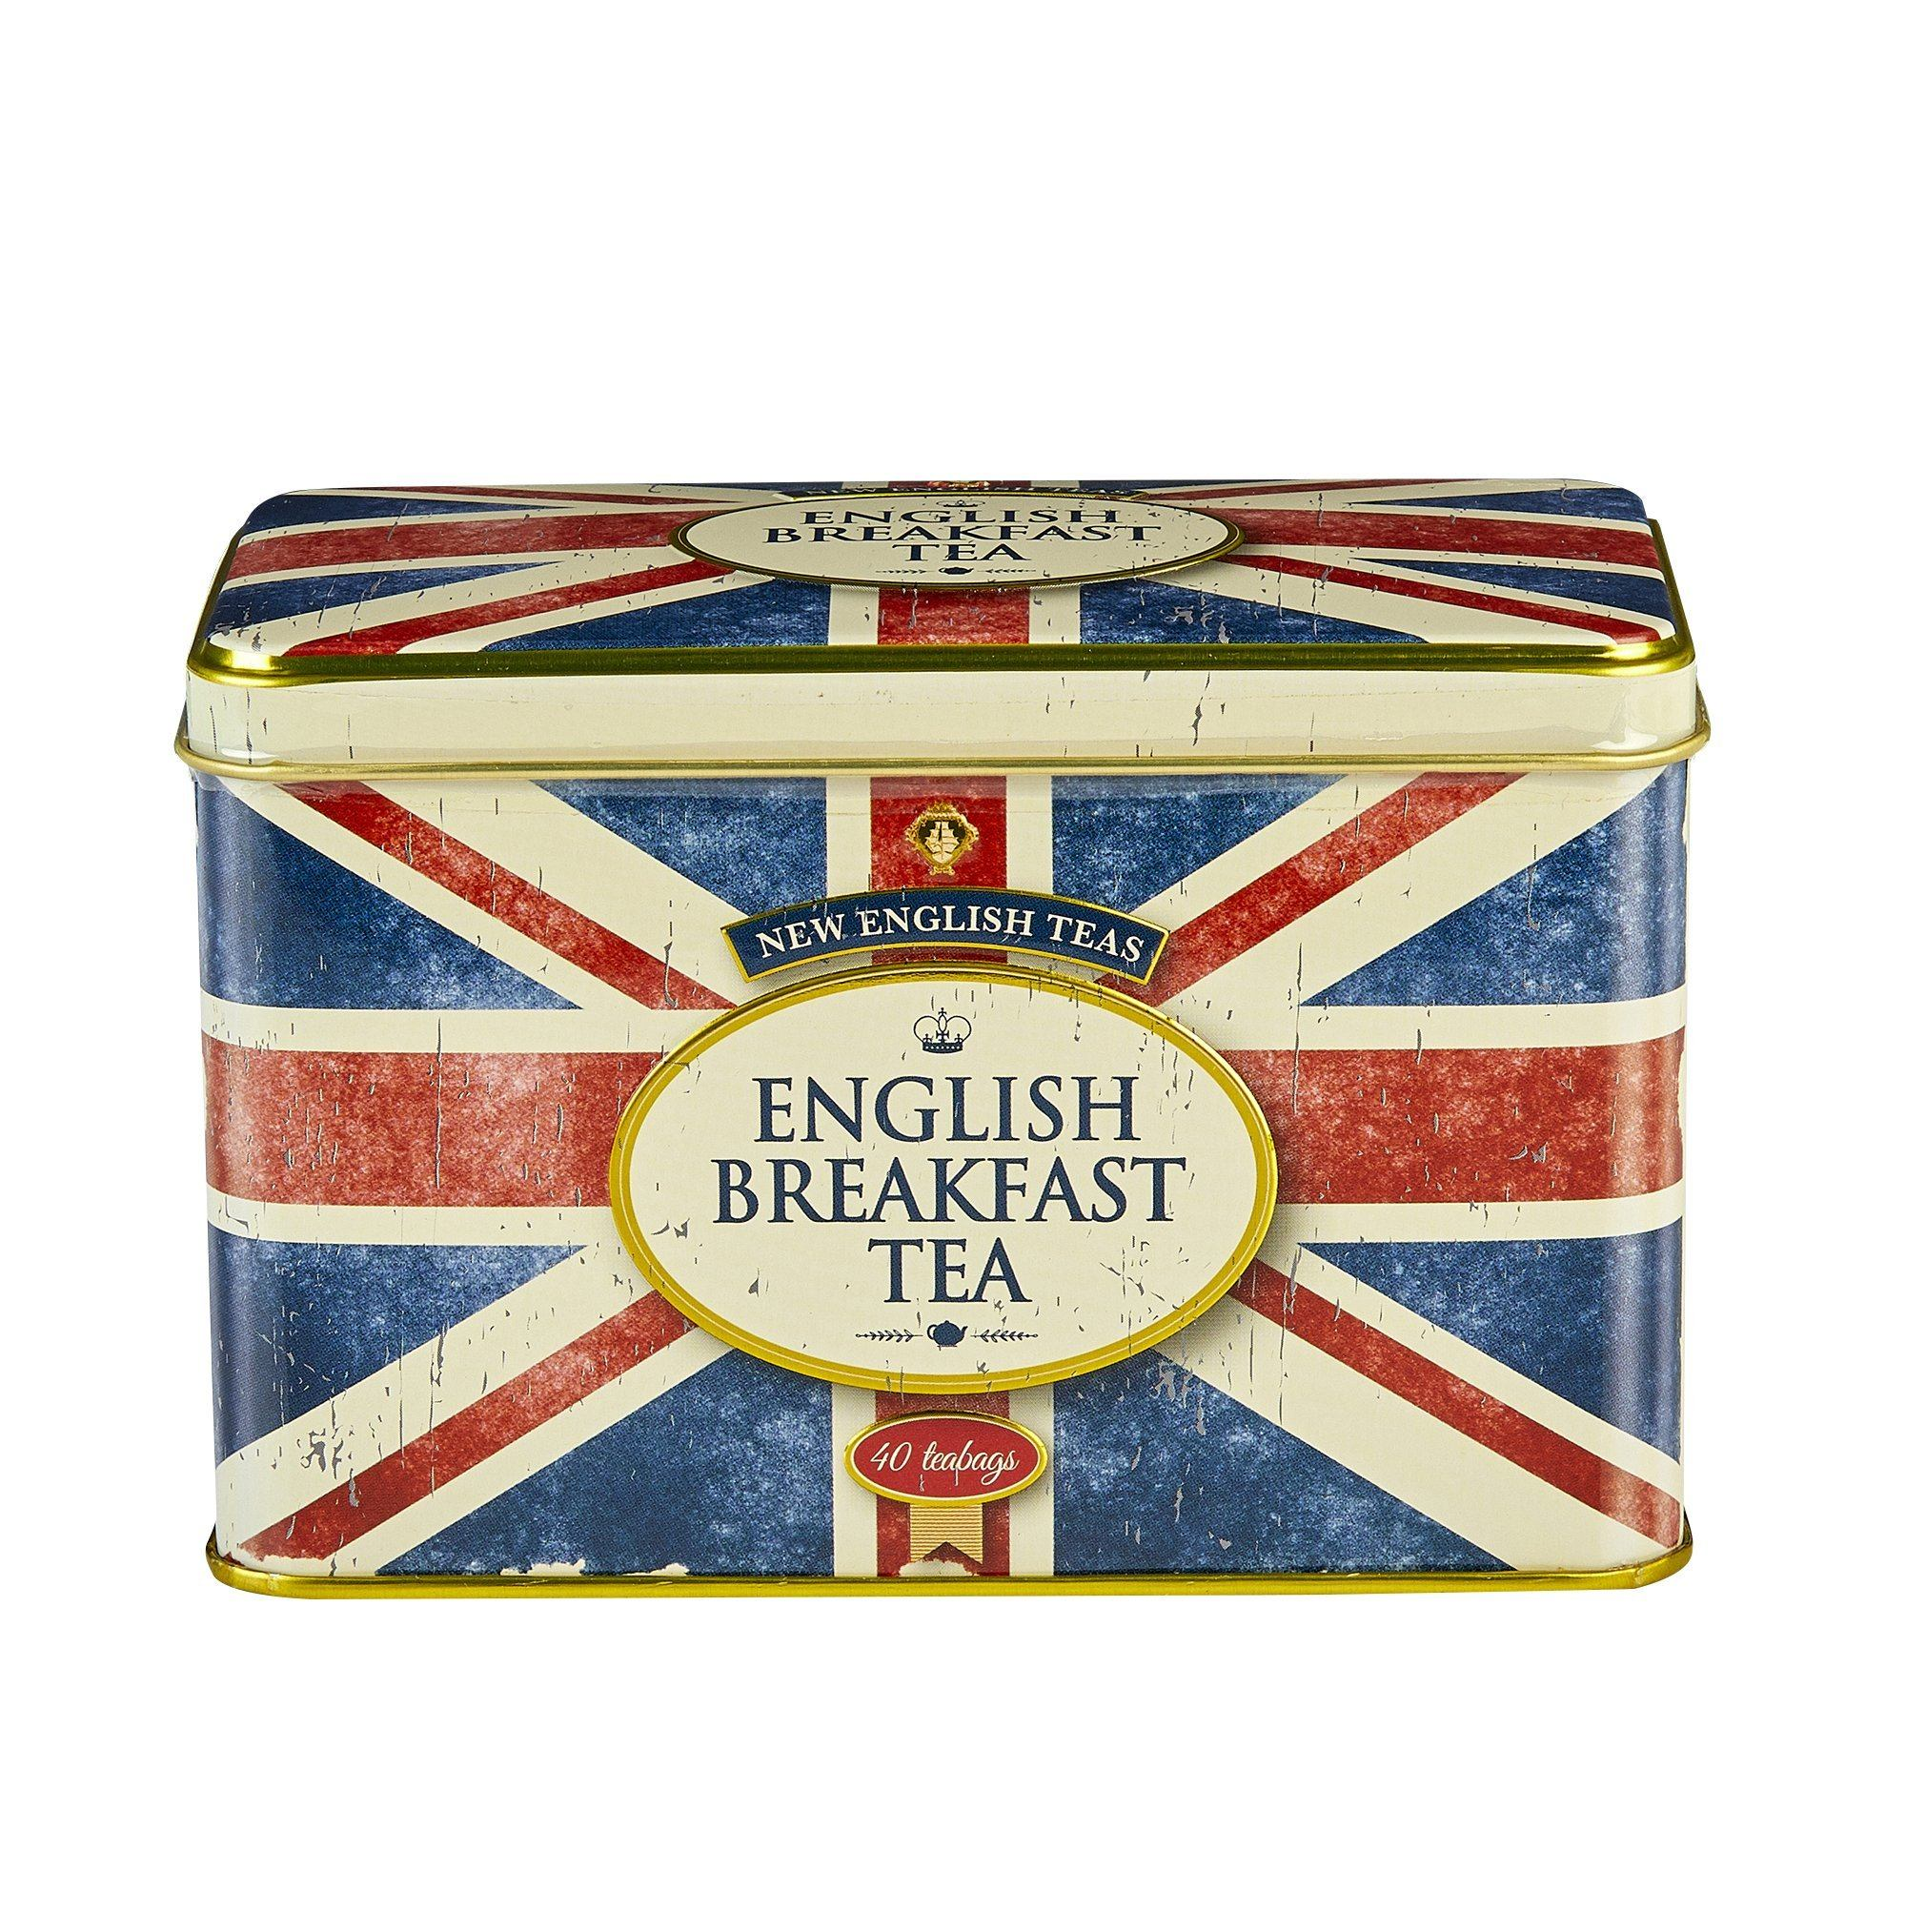 Retro Union Jack English Breakfast Tea Tin 40 Teabags Black Tea New English Teas